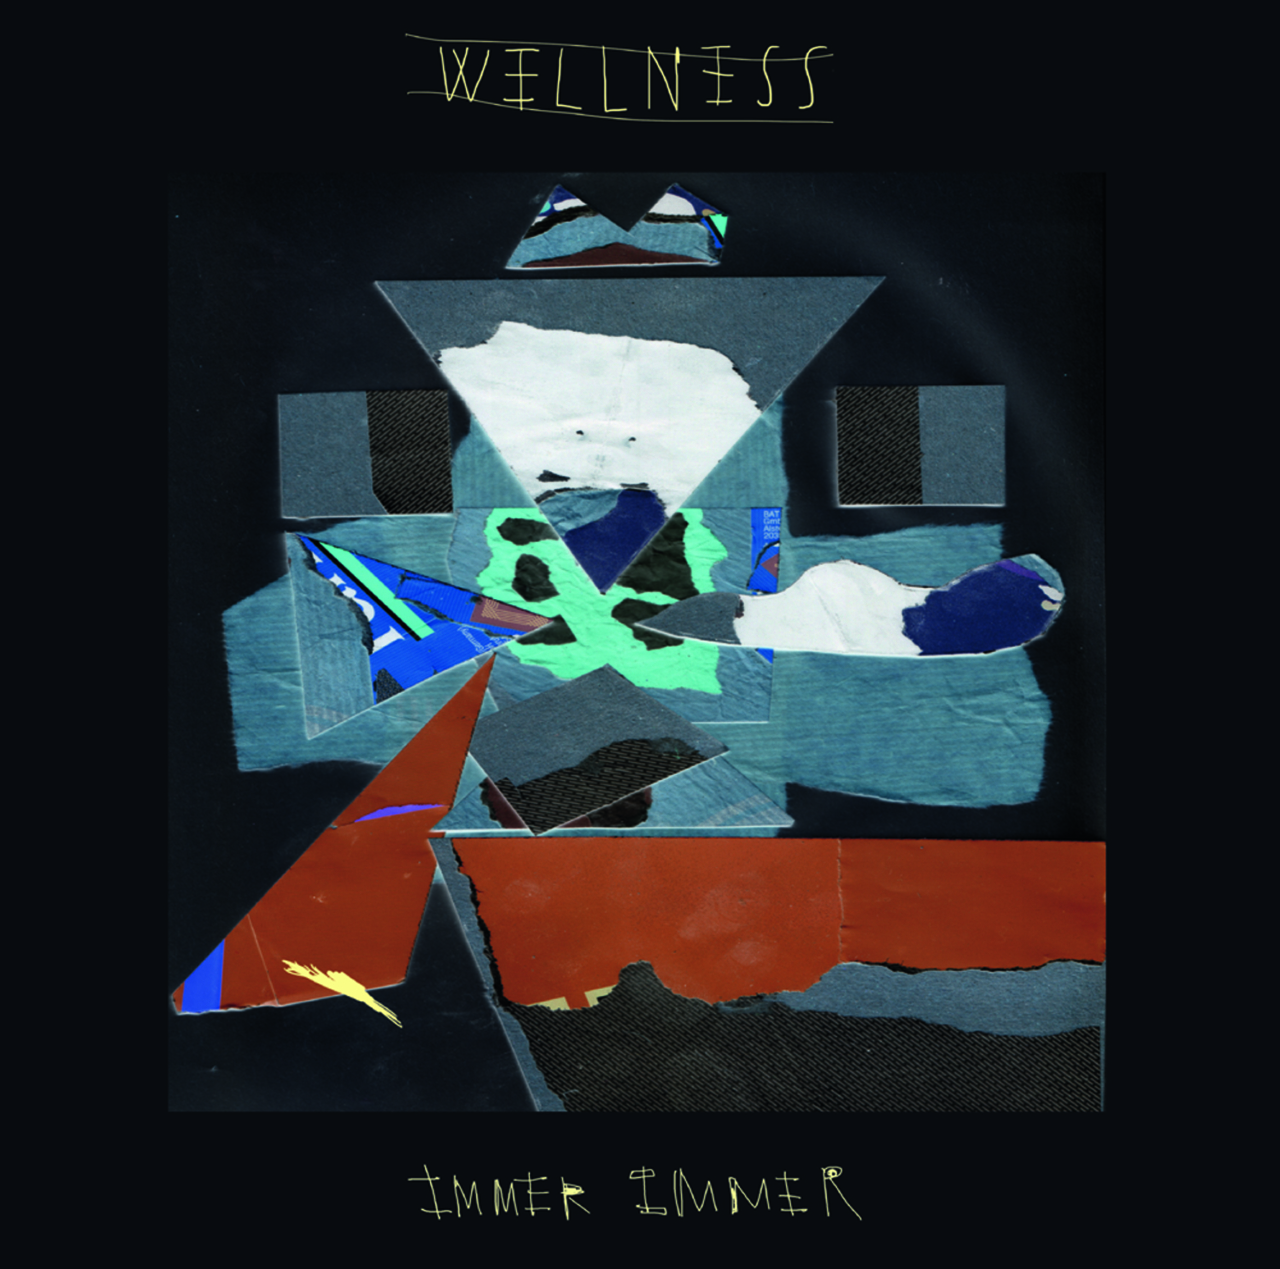 Album Cover Wellness - Immer Immer - CMYK 300dpi